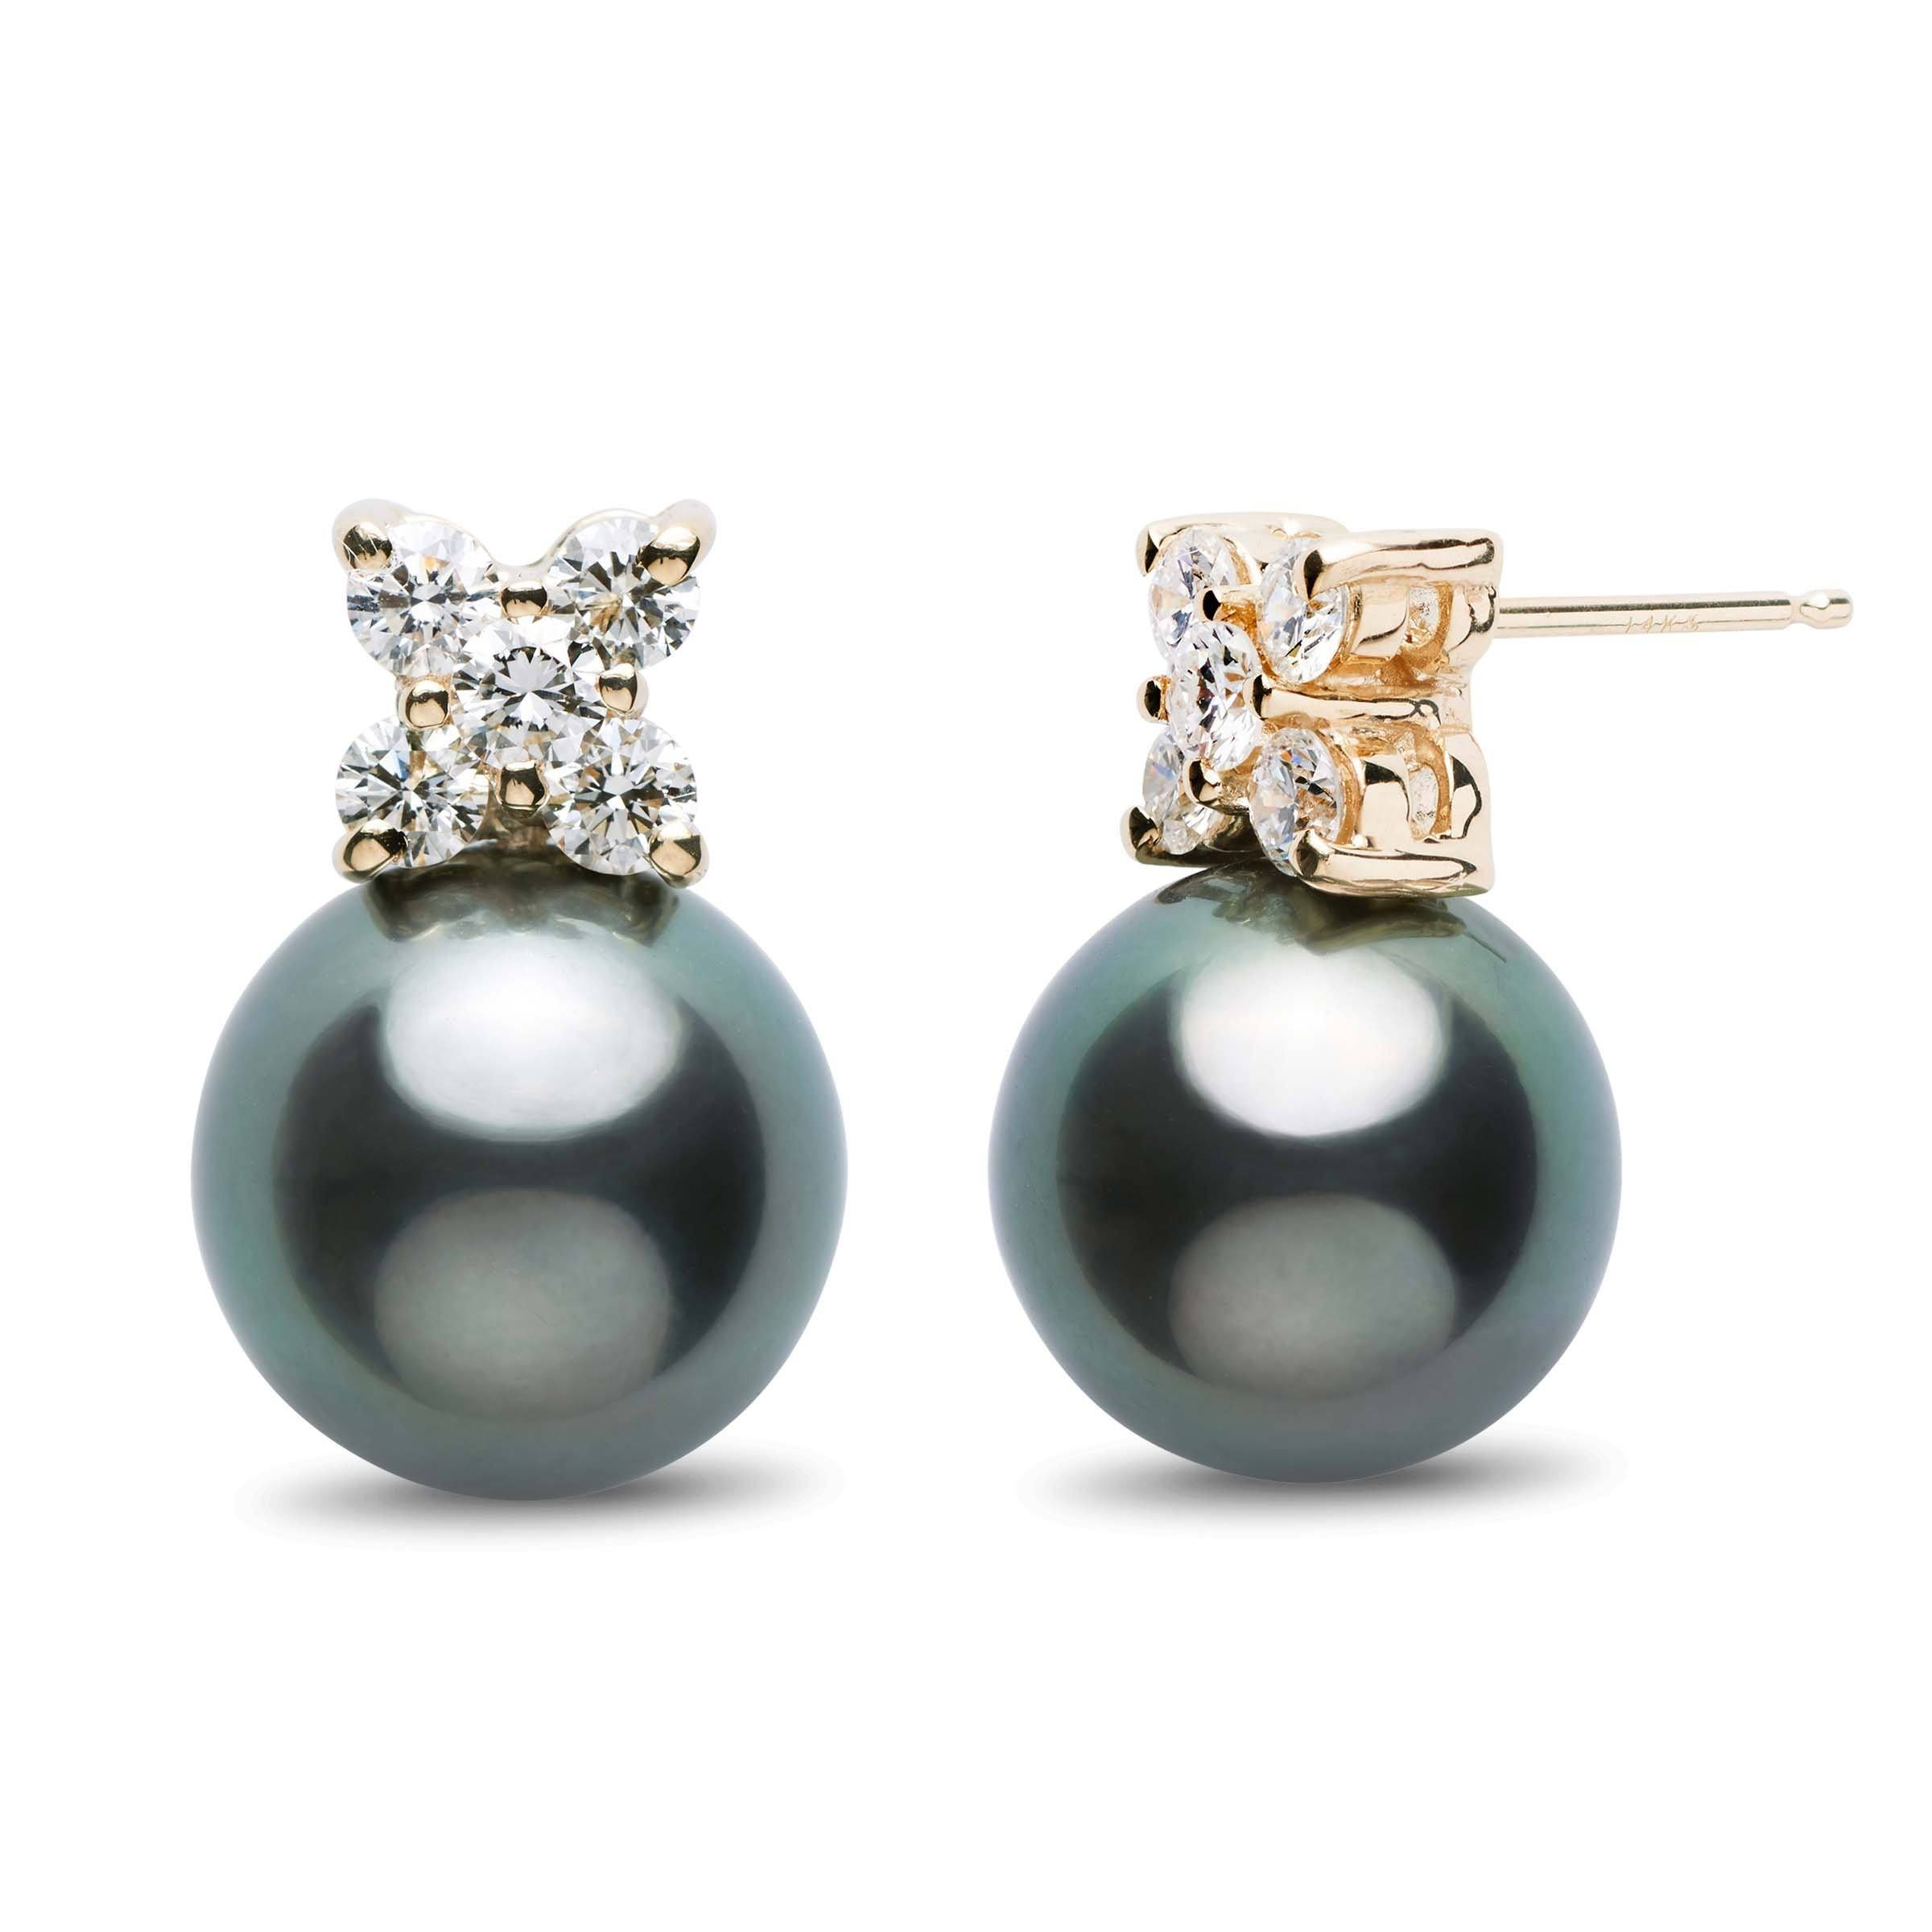 Kiss Collection Tahitian 11.0-12.0 mm Pearl and Diamond Stud Earrings